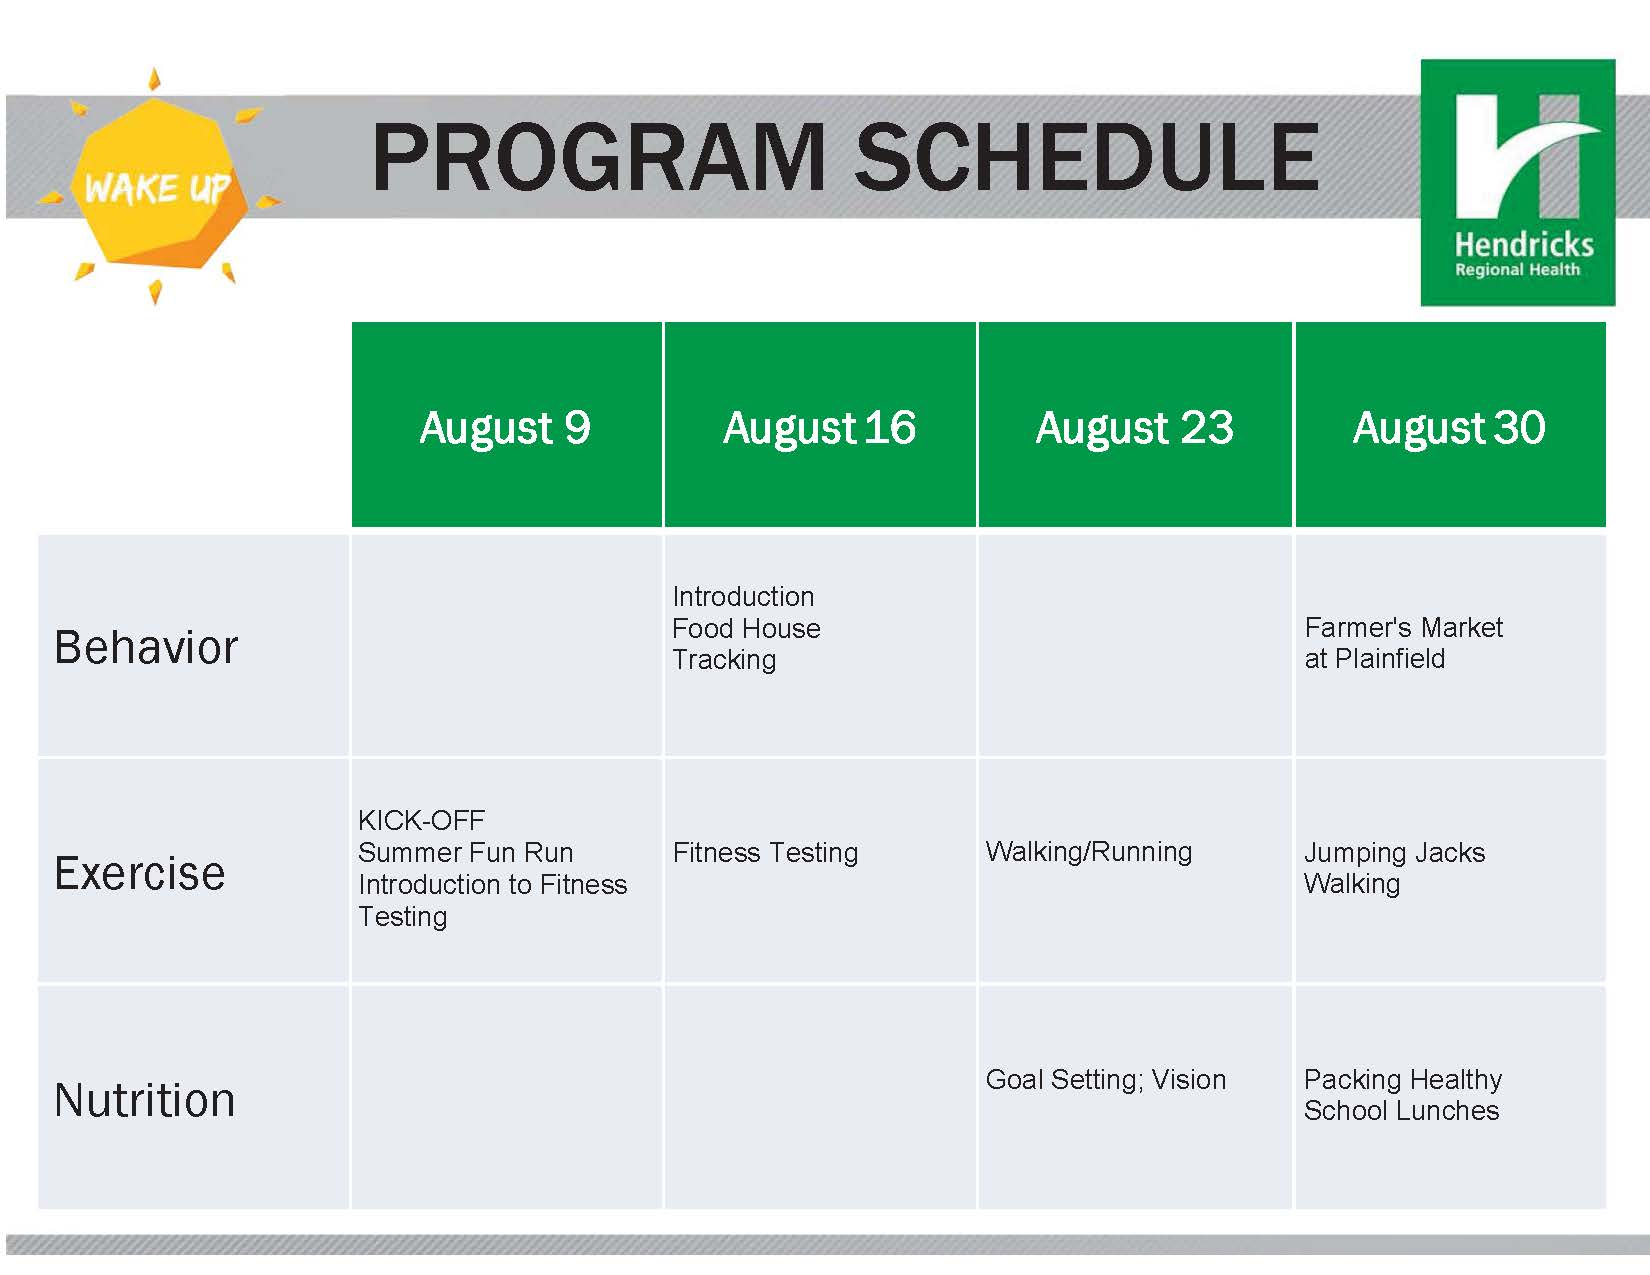 Indiana hendricks county lizton - Click Here To Download The August Wake Up Schedule